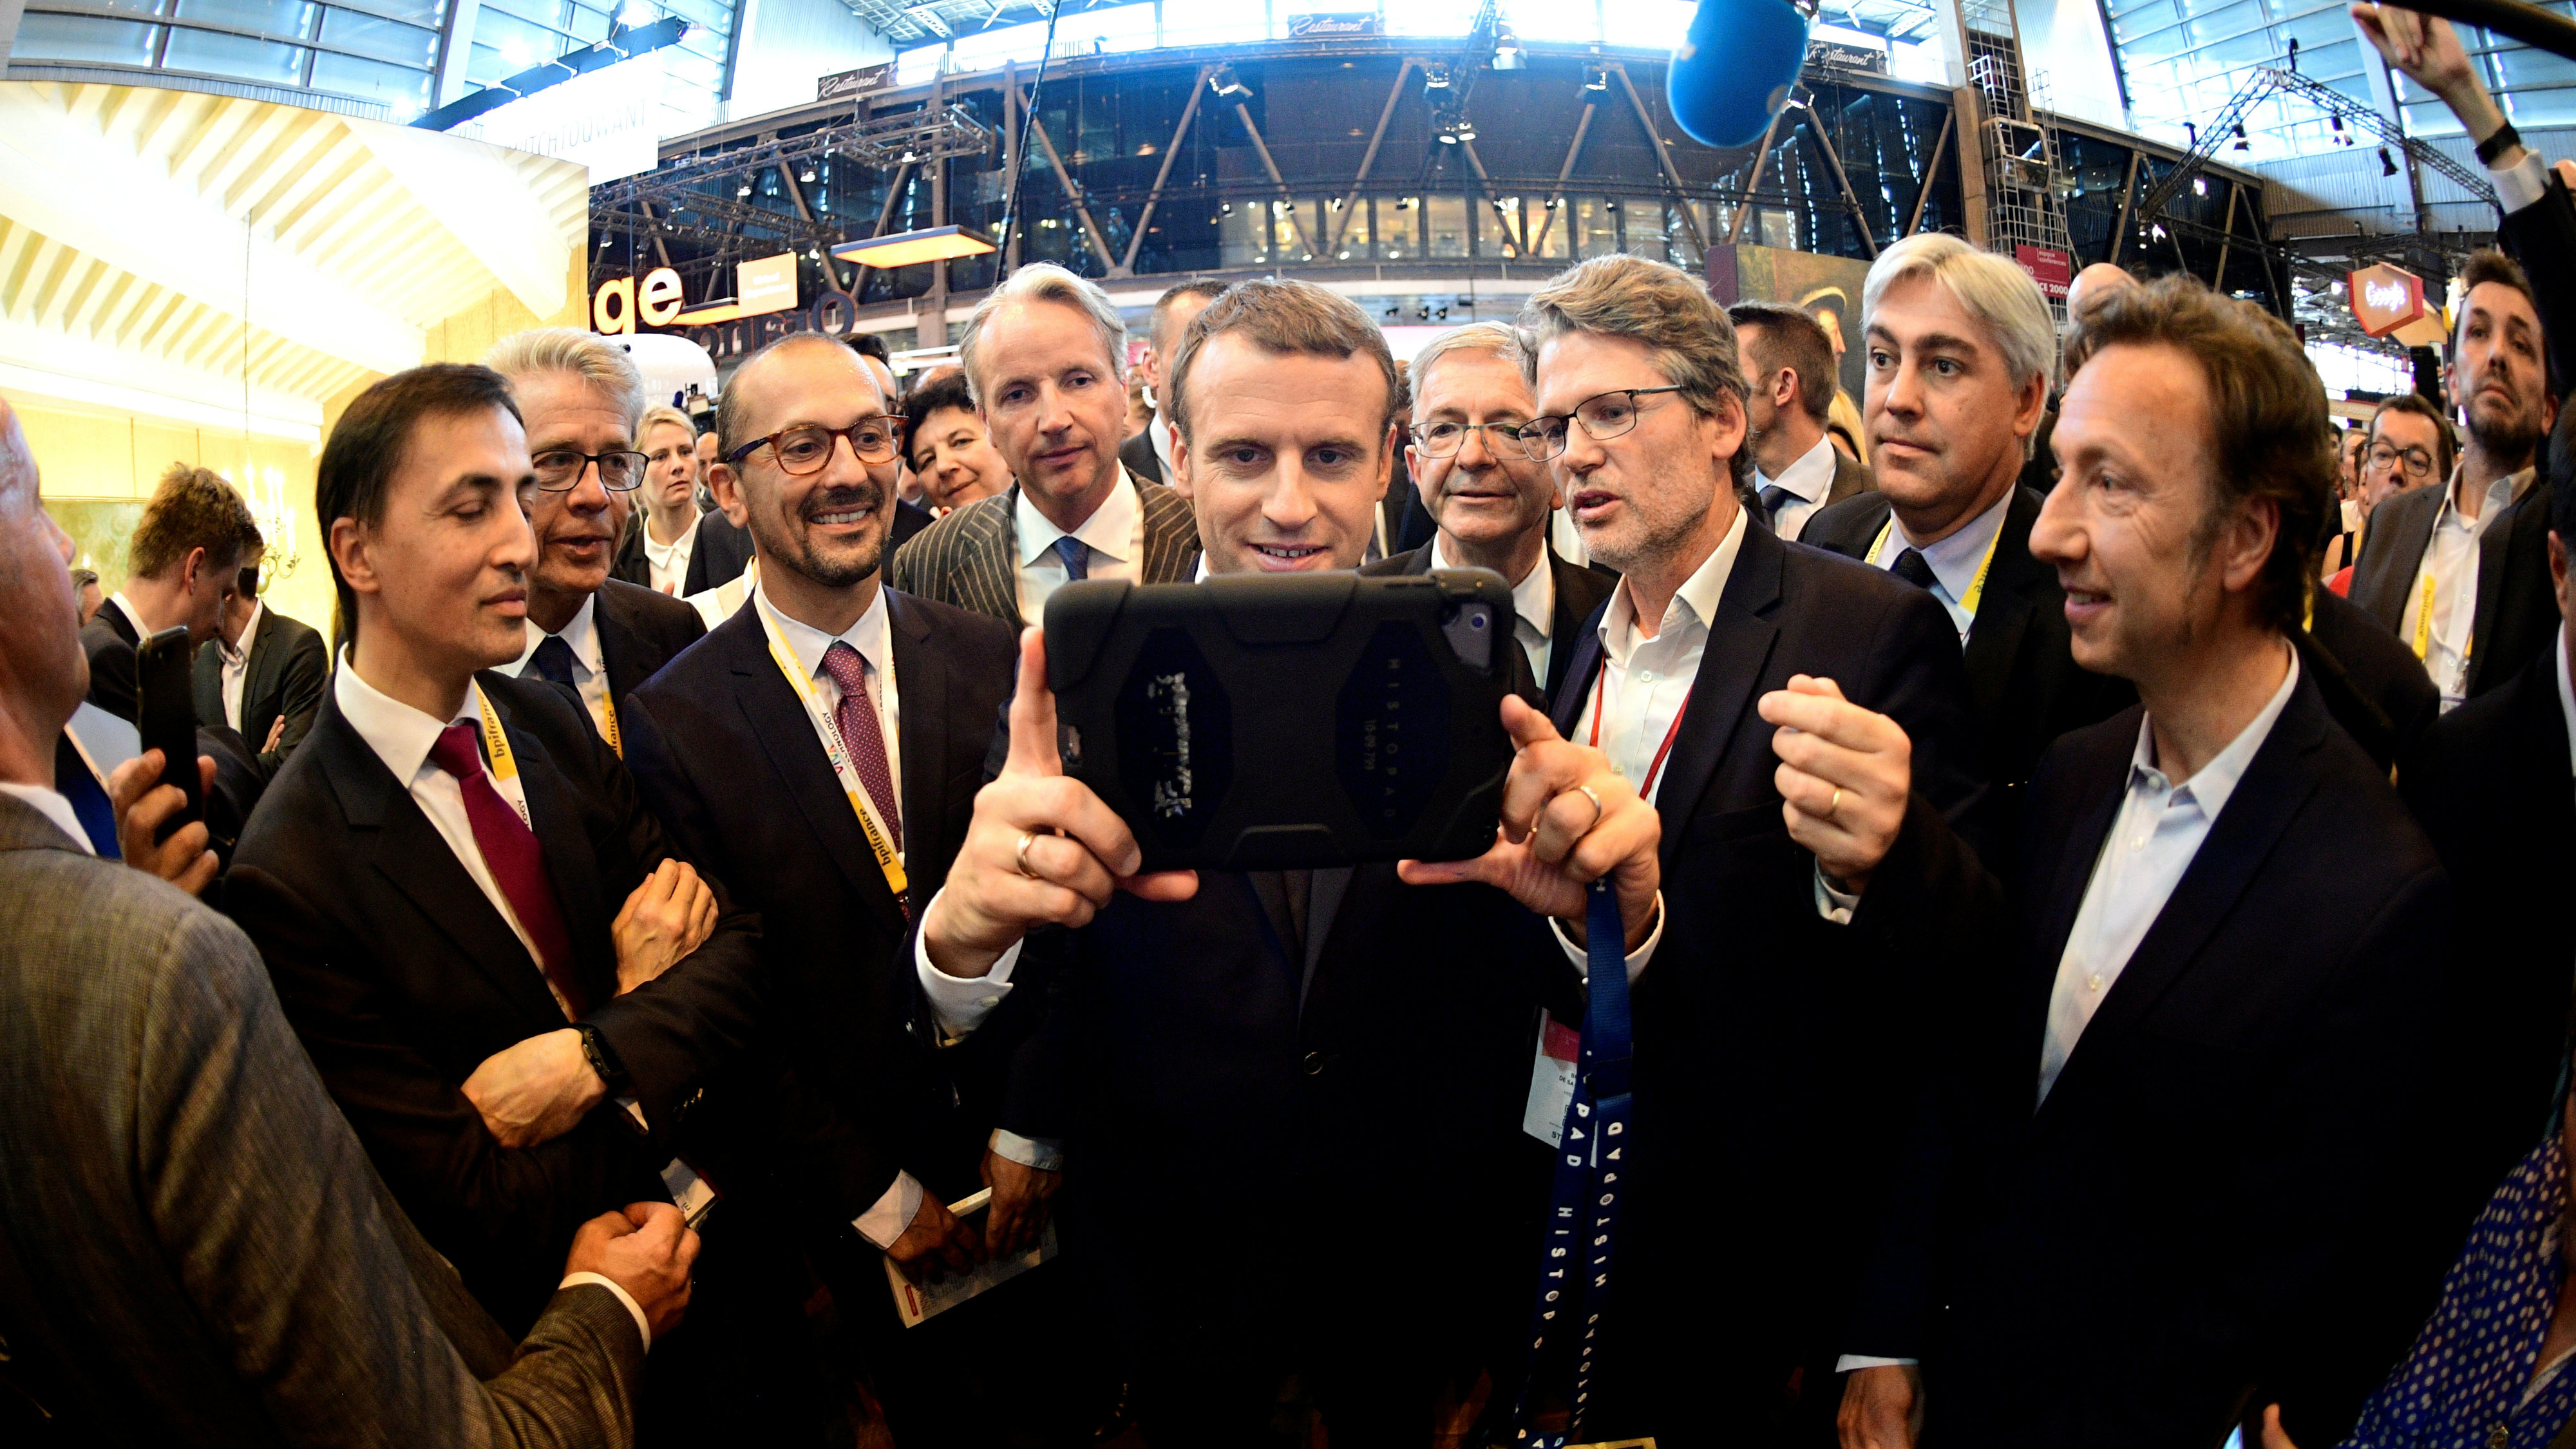 French President Emmanuel Macron C Holds A Device At The Viva Technology Event Dedicated